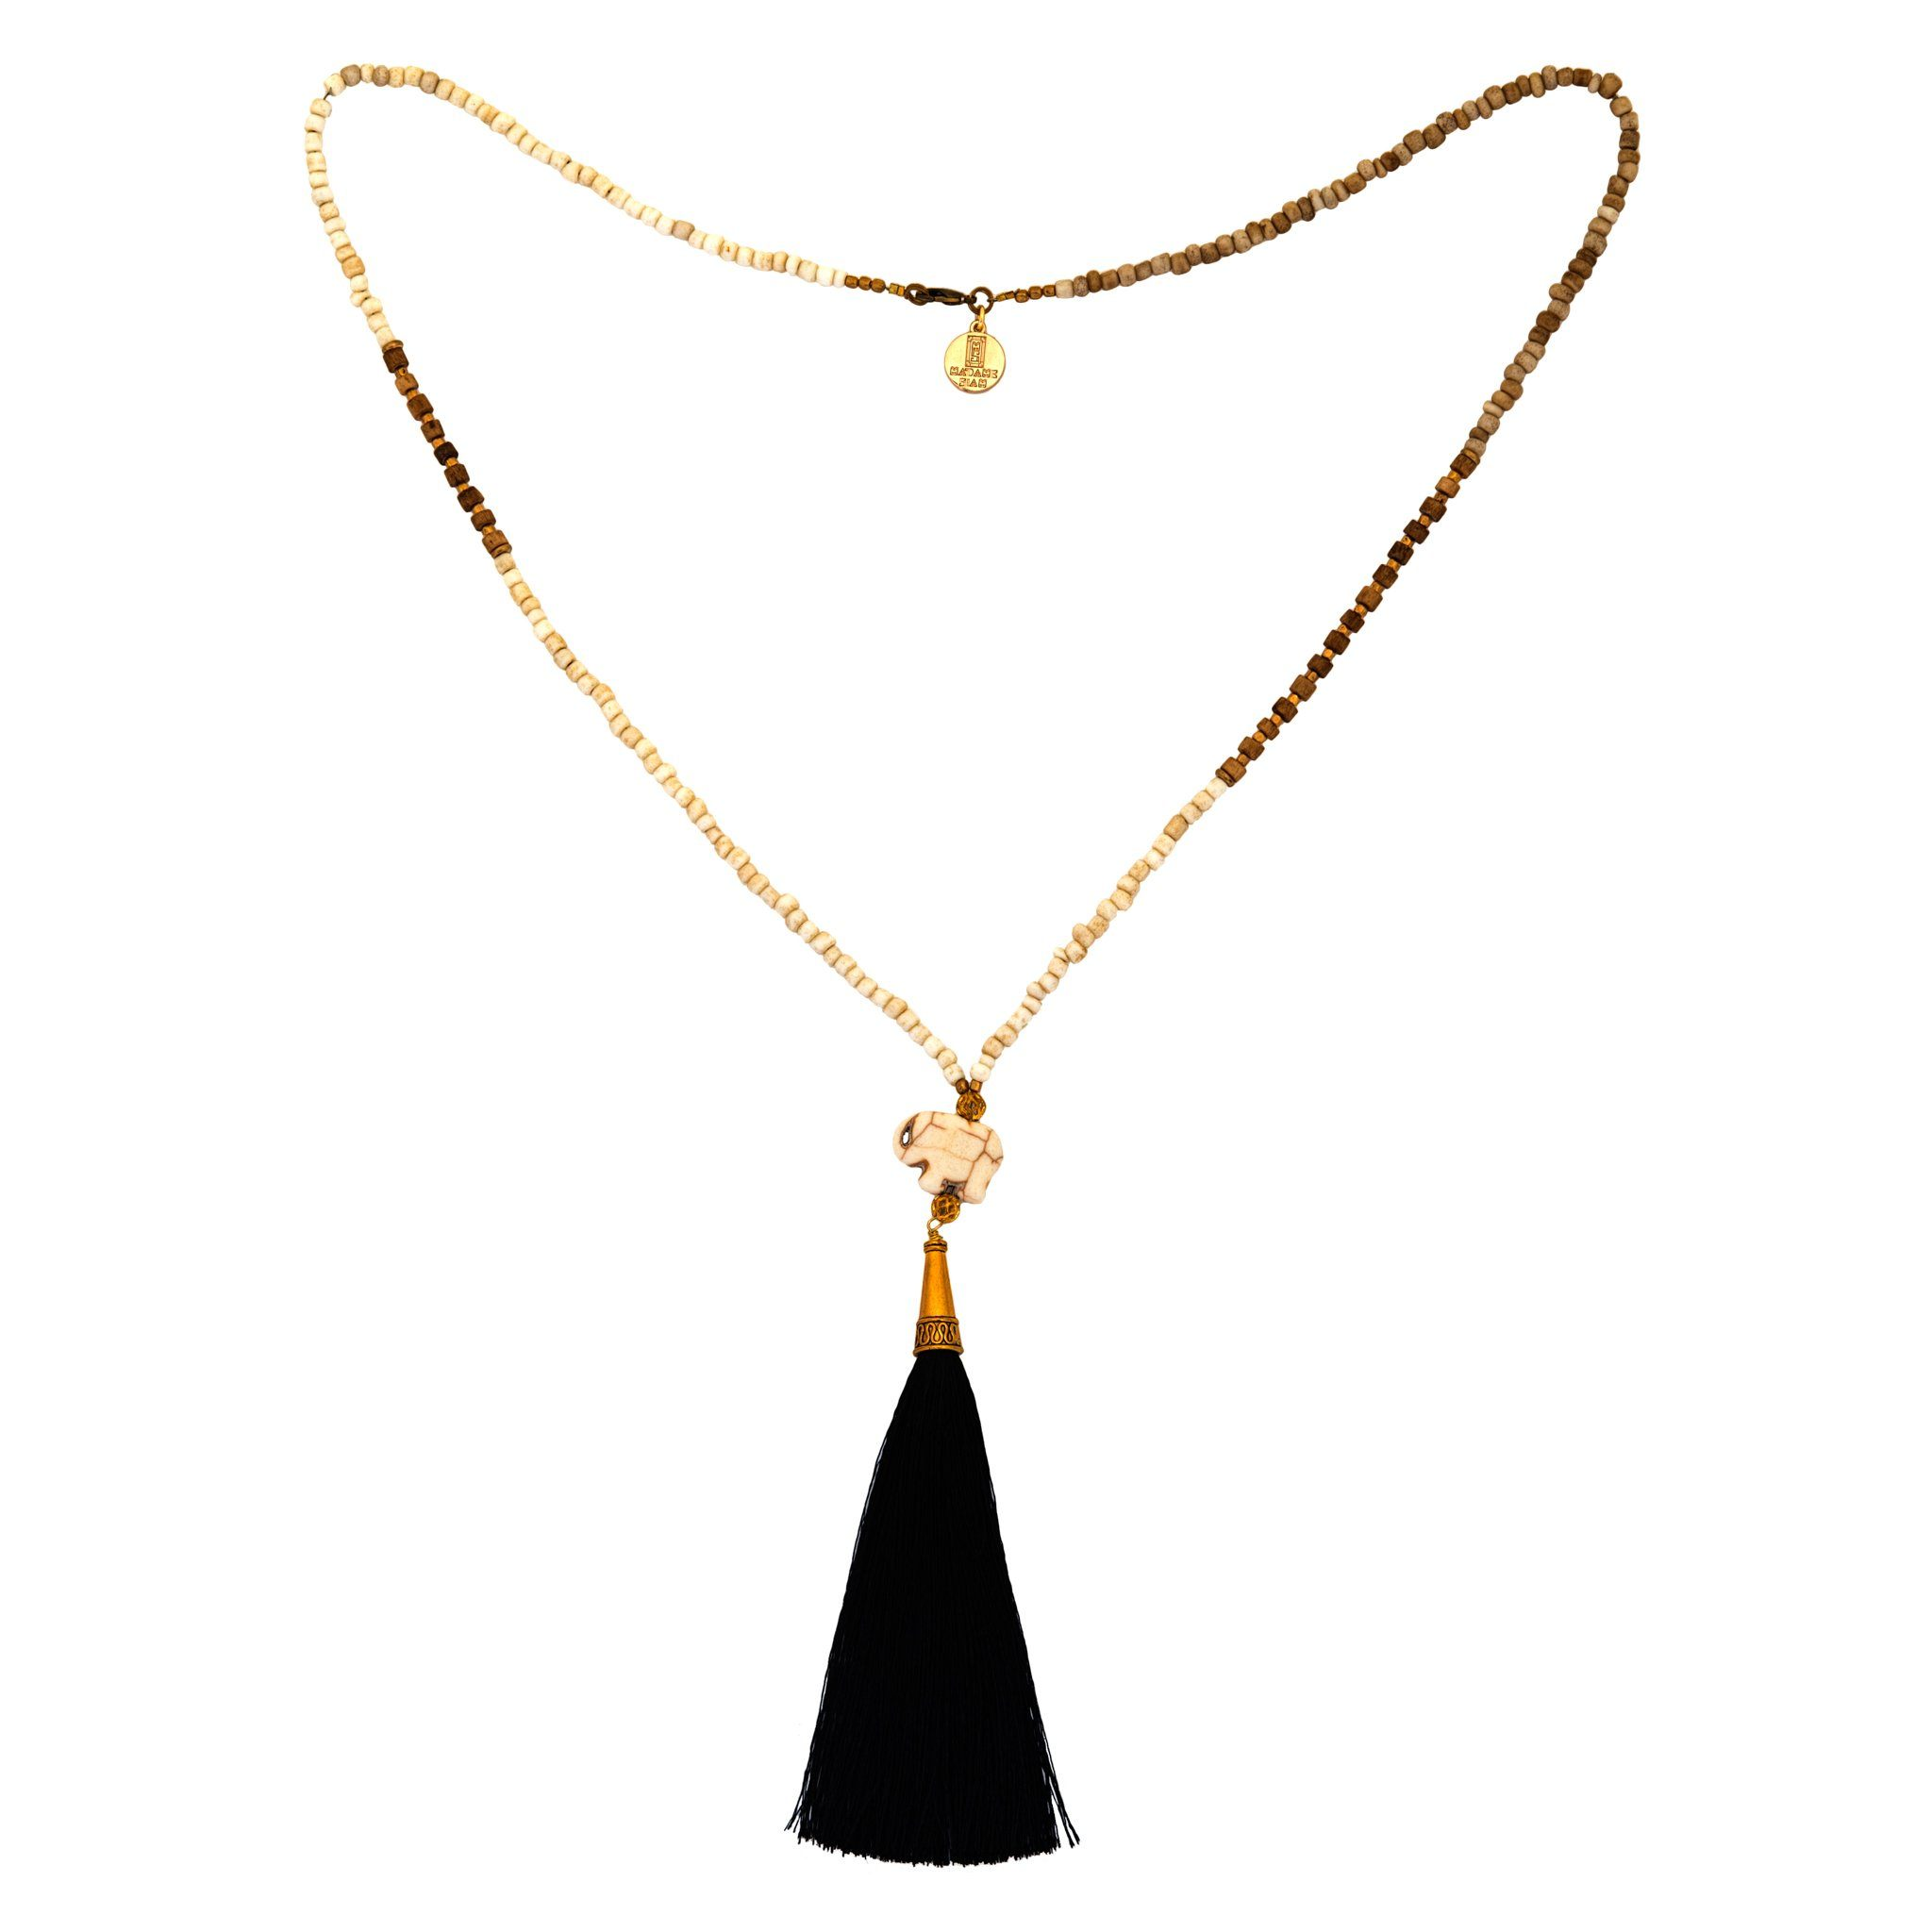 CHANG black and white tassel necklace